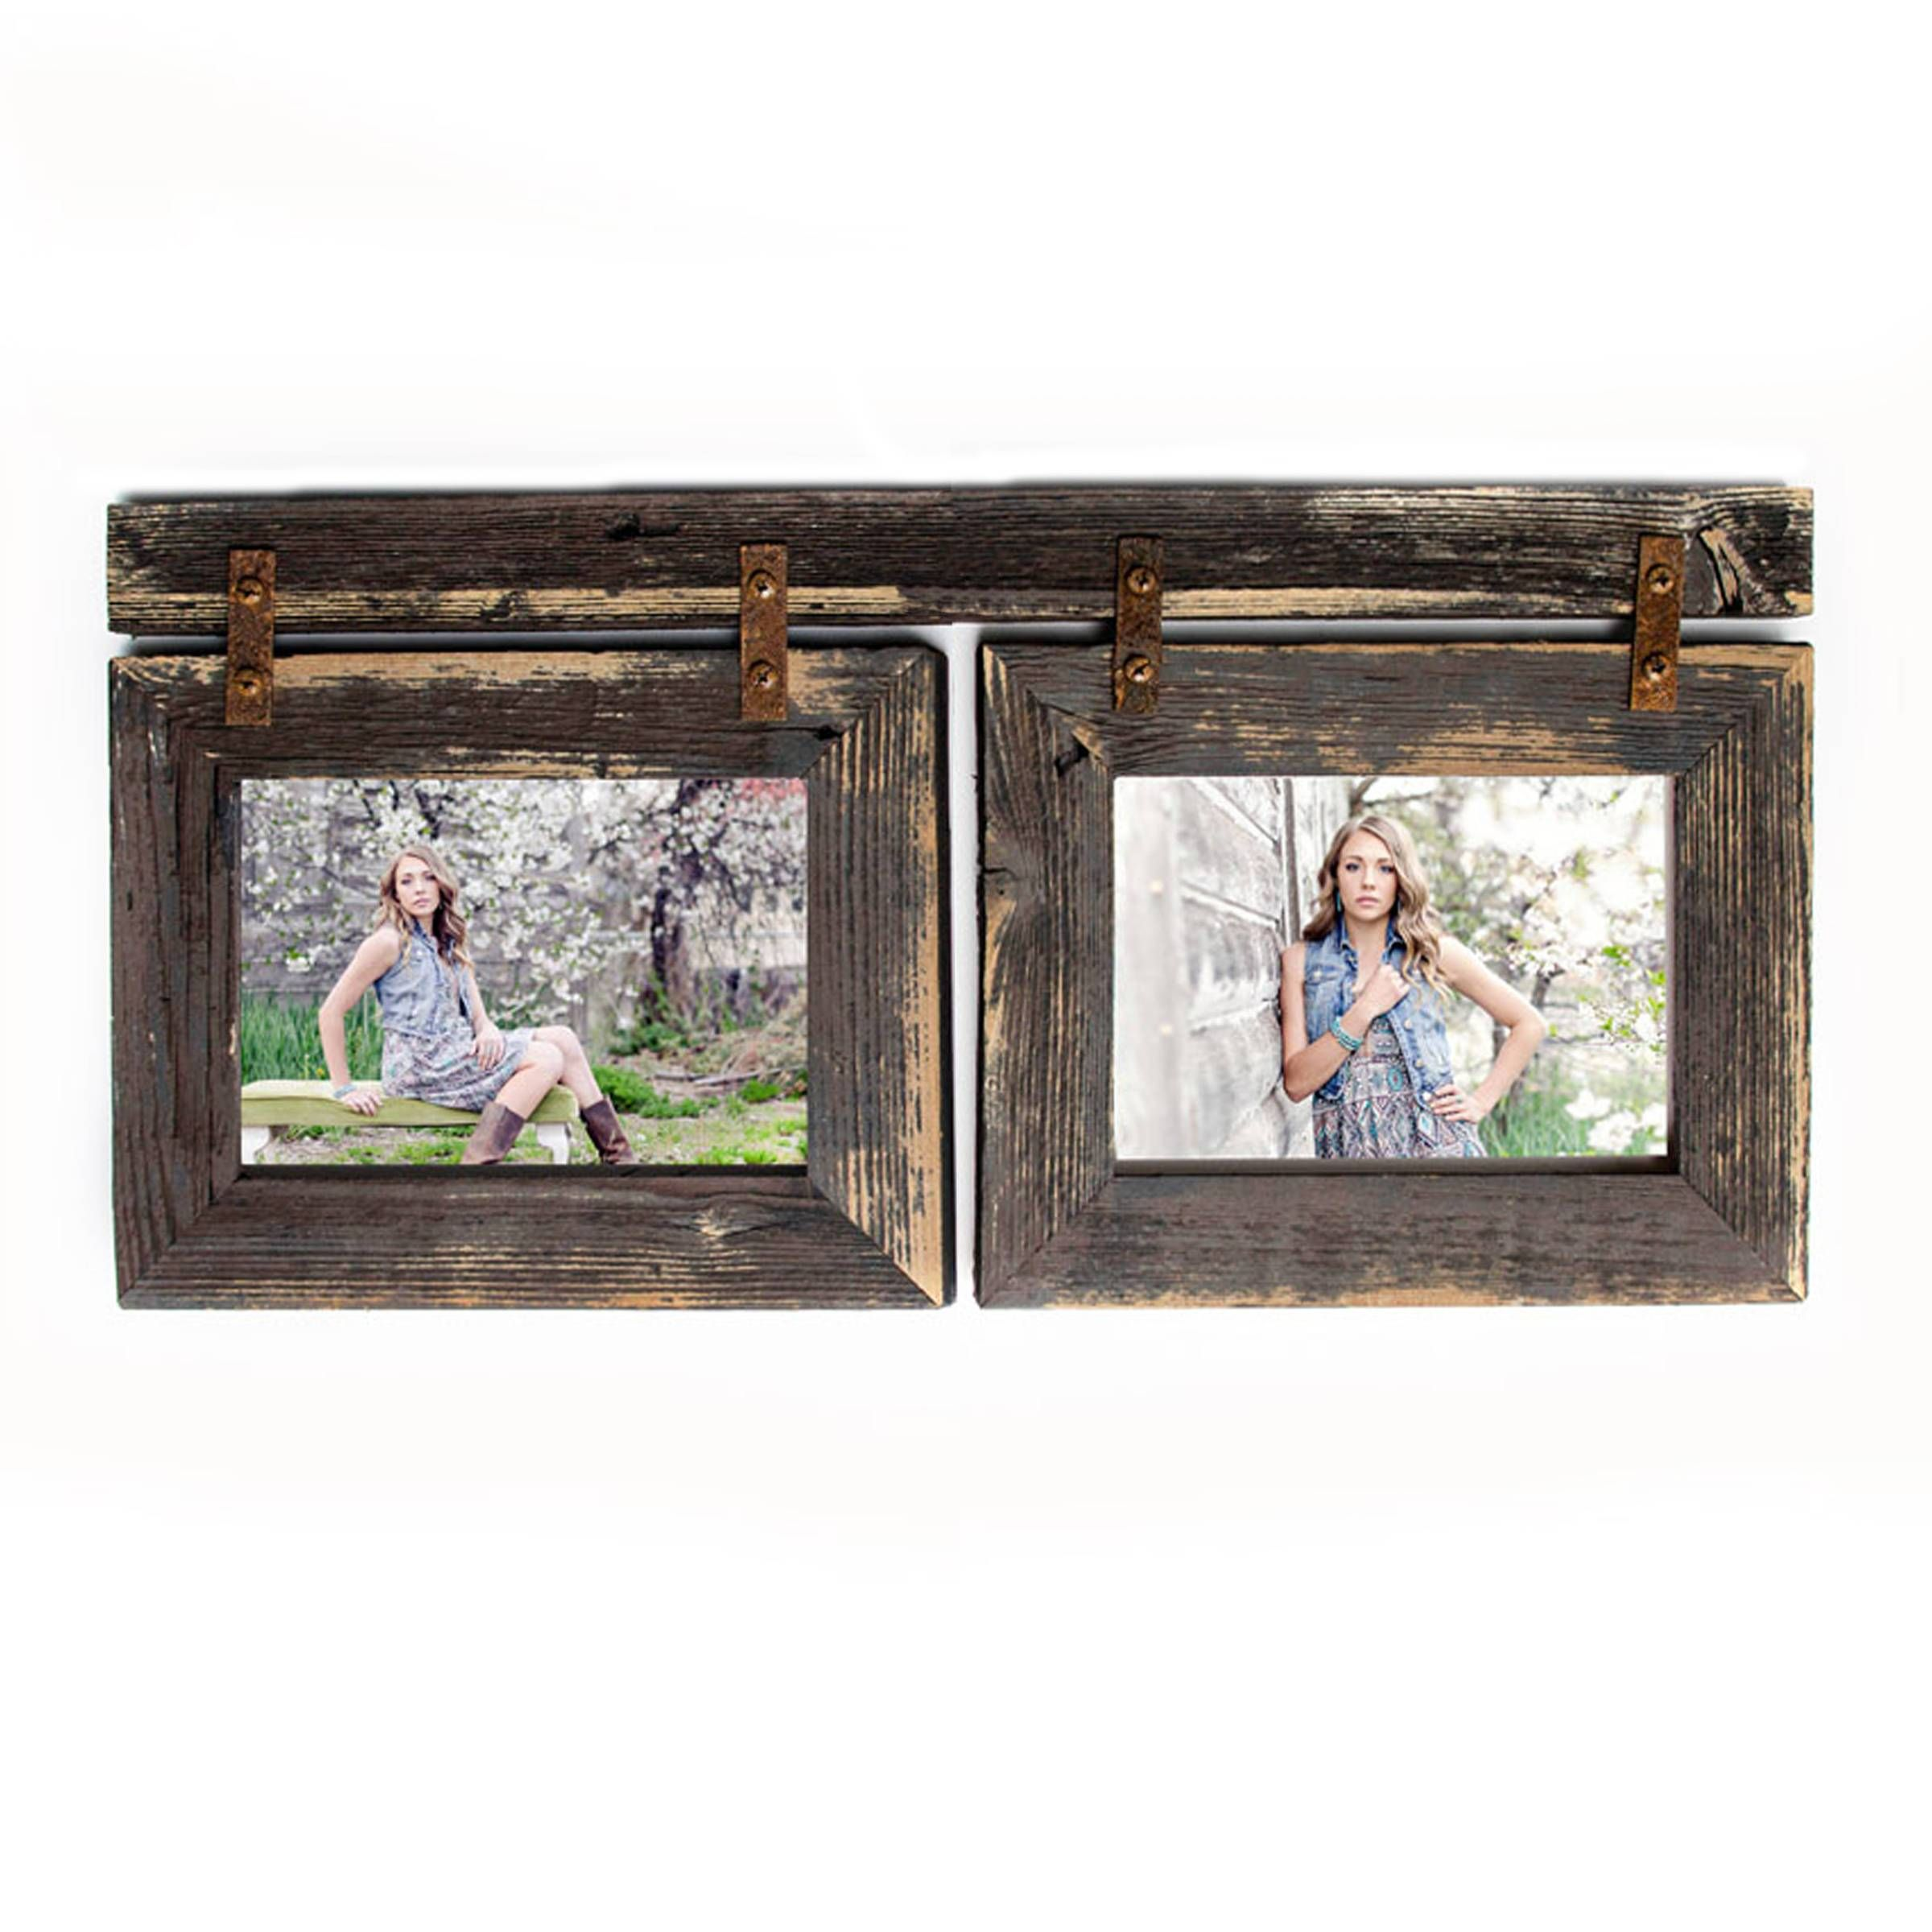 5x7 Collage Frame, Picture Frame Collage, Multi Photo Frames ...